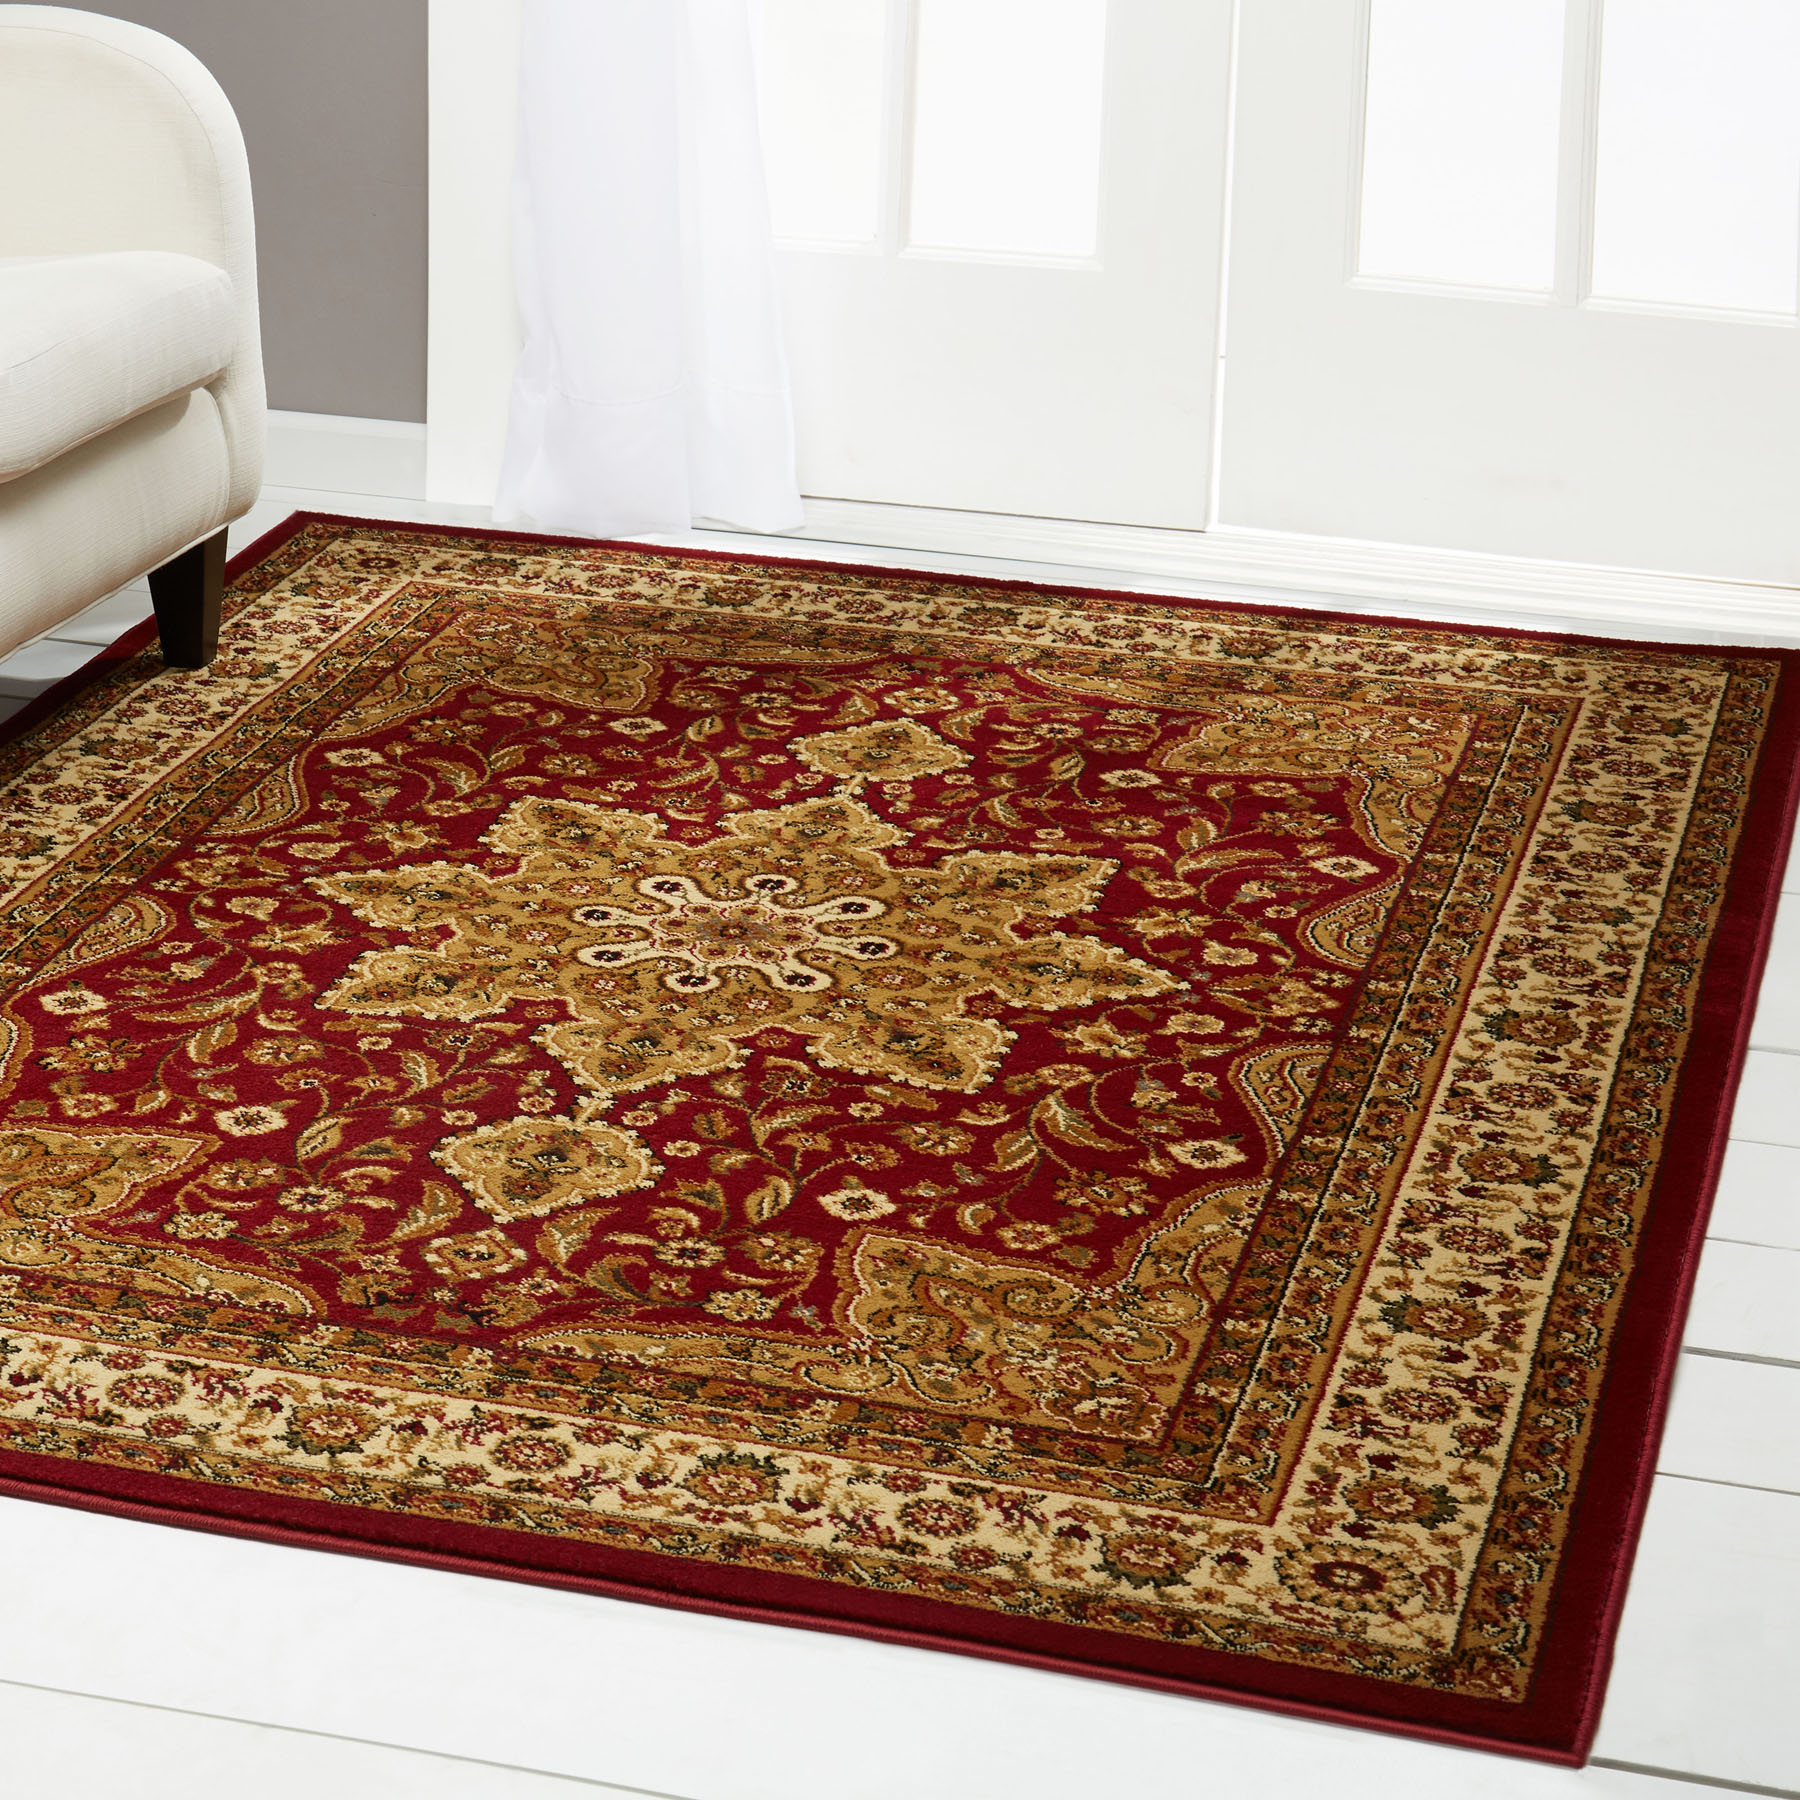 Burgundy Red Oriental Area Rug 4 X 6 Small Persian 83 Actual 3 6